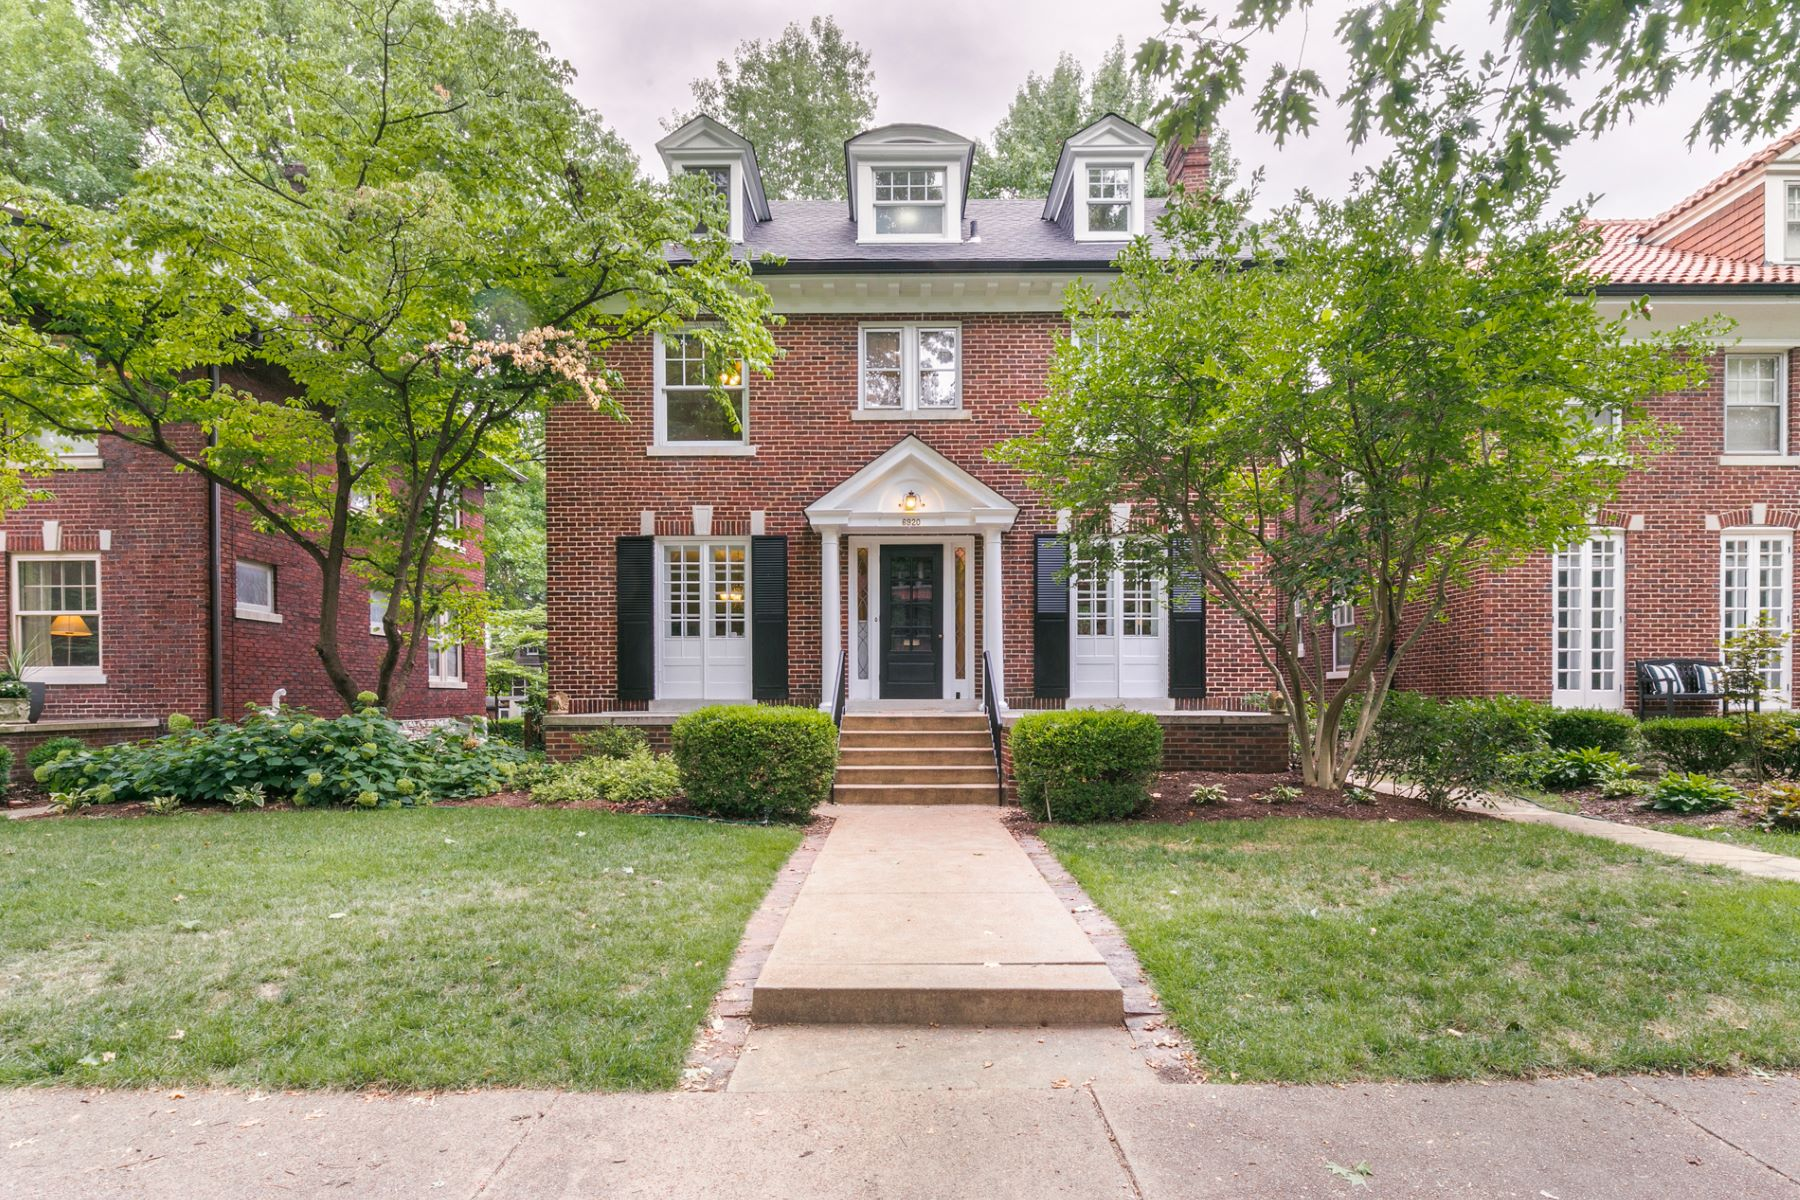 Single Family Home for Sale at Waterman Ave 6920 Waterman Ave St. Louis, Missouri 63130 United States